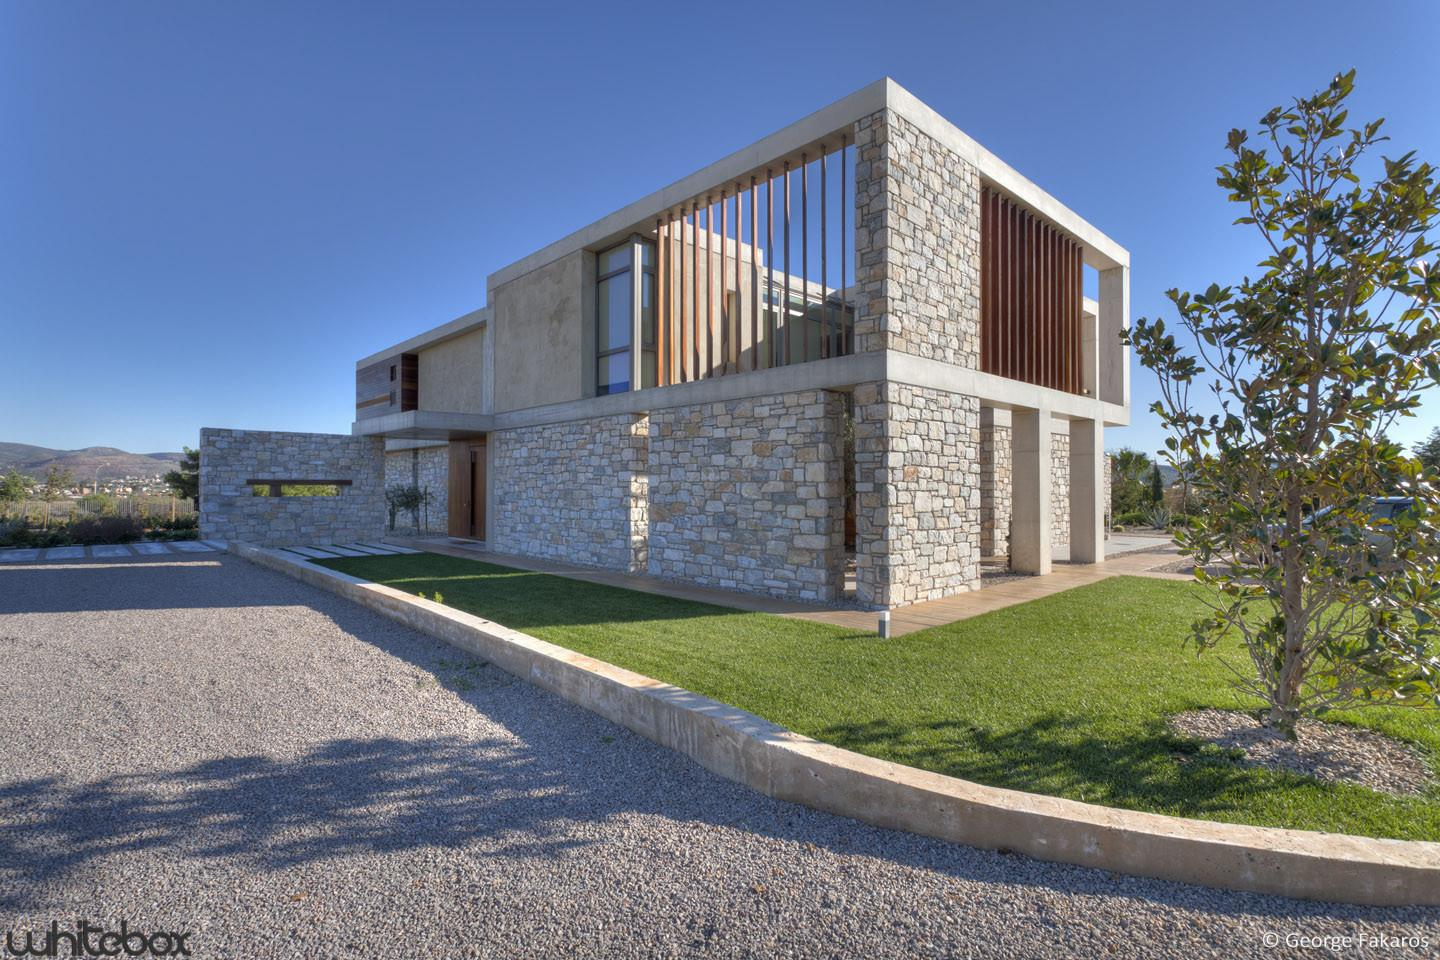 Stone House Anavissos Whitebox Architects Archdaily